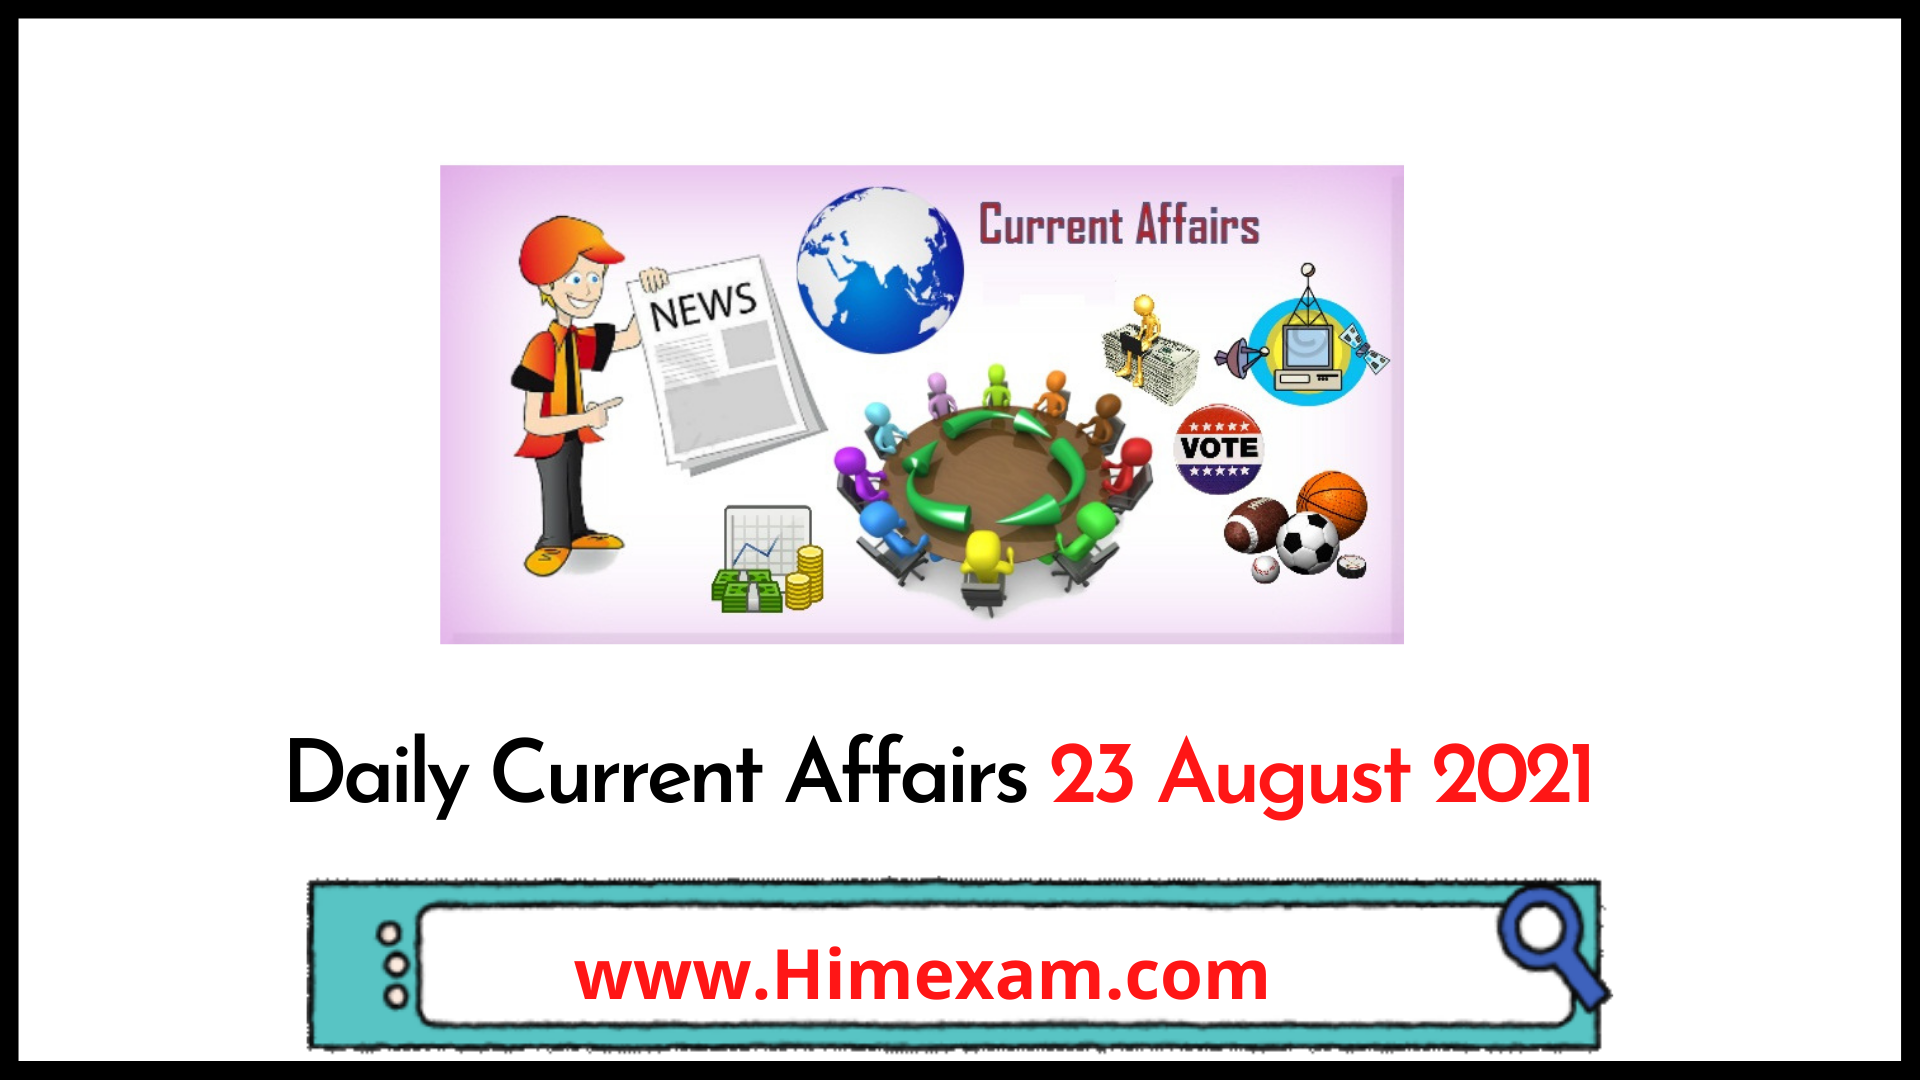 Daily Current Affairs 23 August 2021